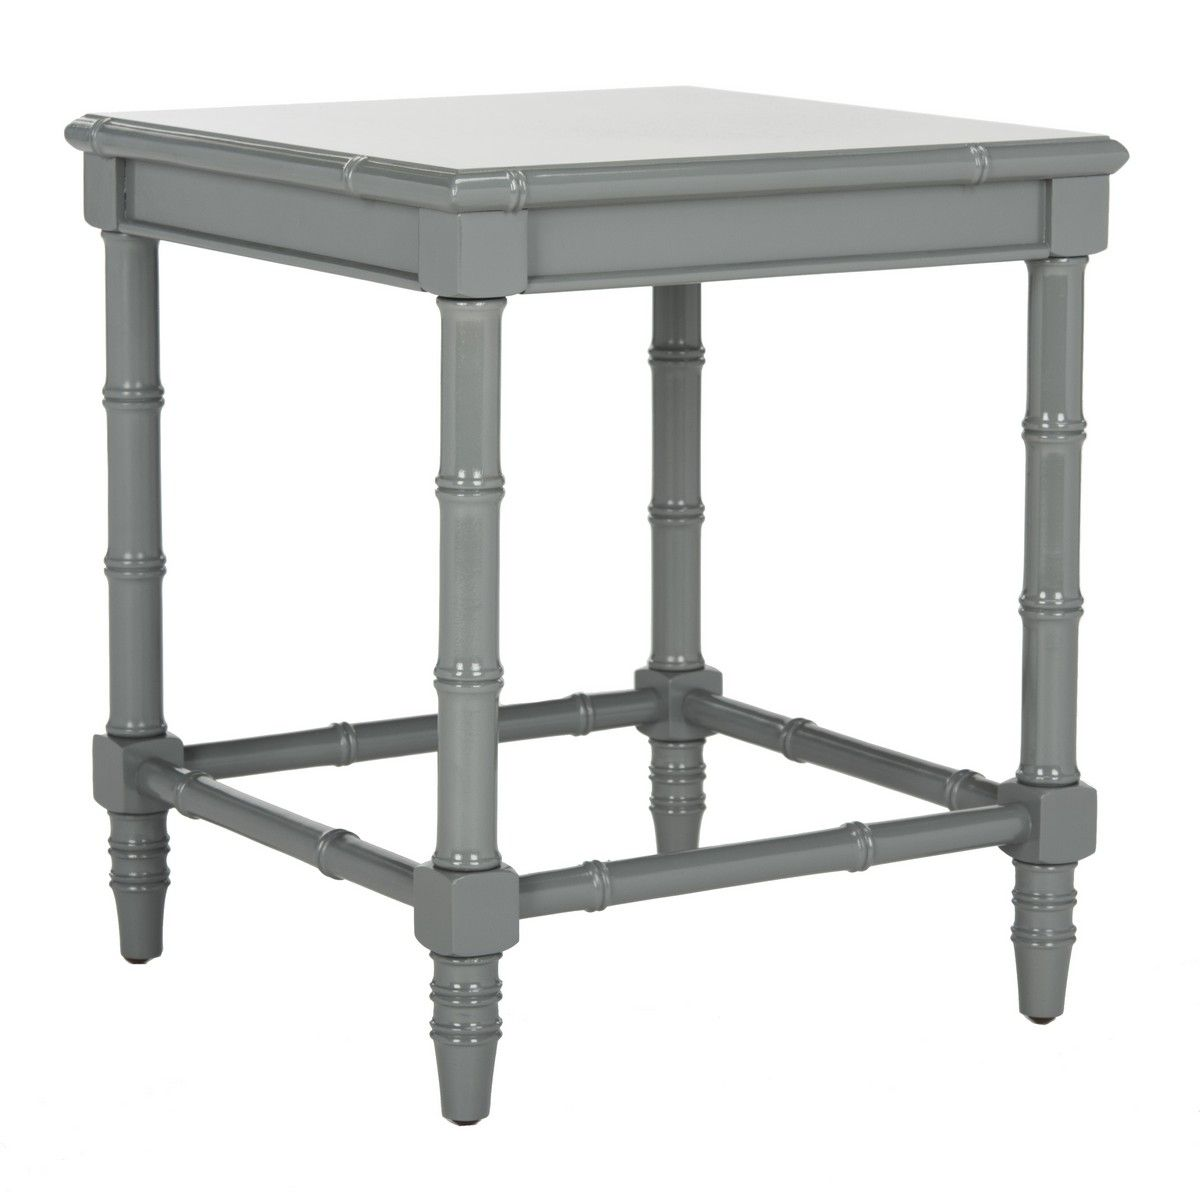 Glossy Grey Lacquered Bamboo Side Table - ON BACKORDER UNTIL MARCH 2021